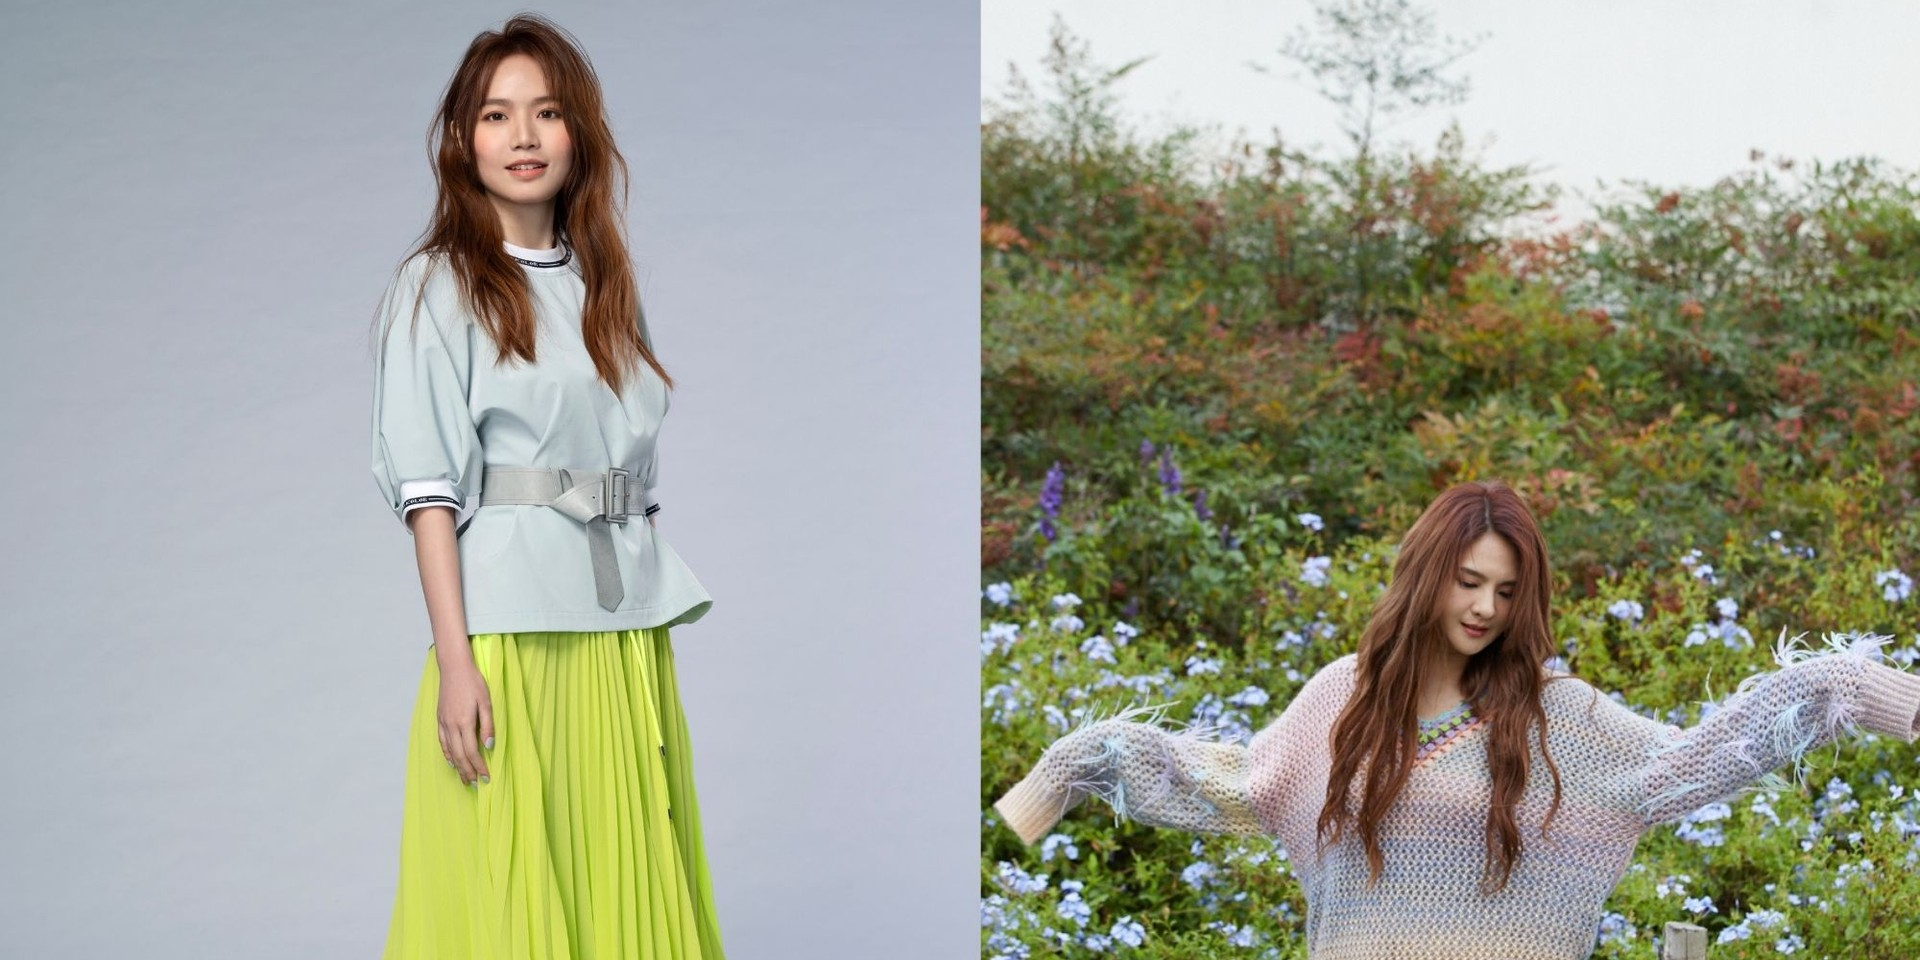 Claire Kuo and Boon Hui Lu to perform in AL!VE concert series